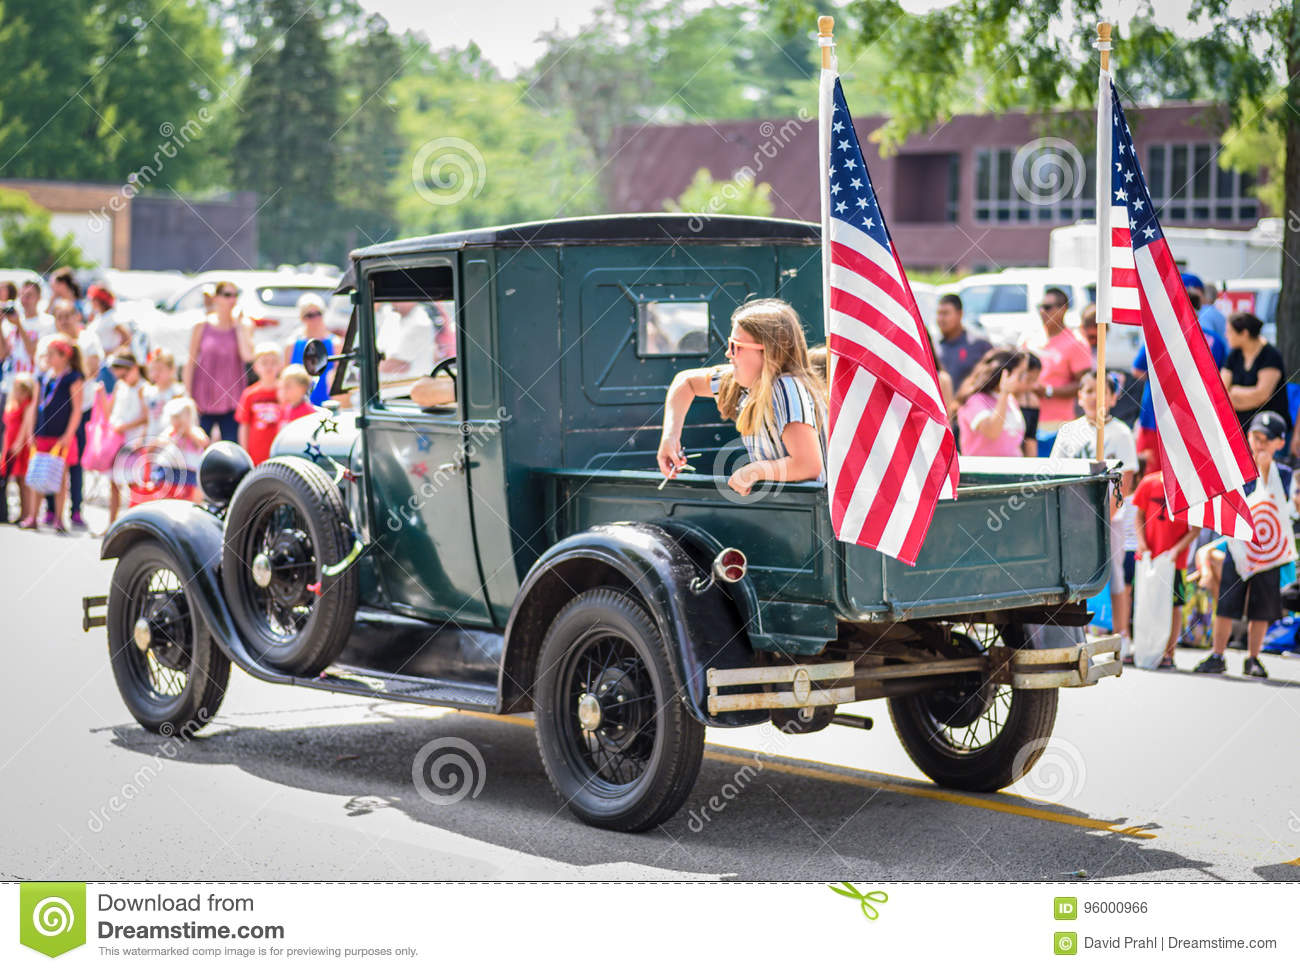 American Flag Vintage Pickup Truck Photos Free Royalty Free Stock Photos From Dreamstime